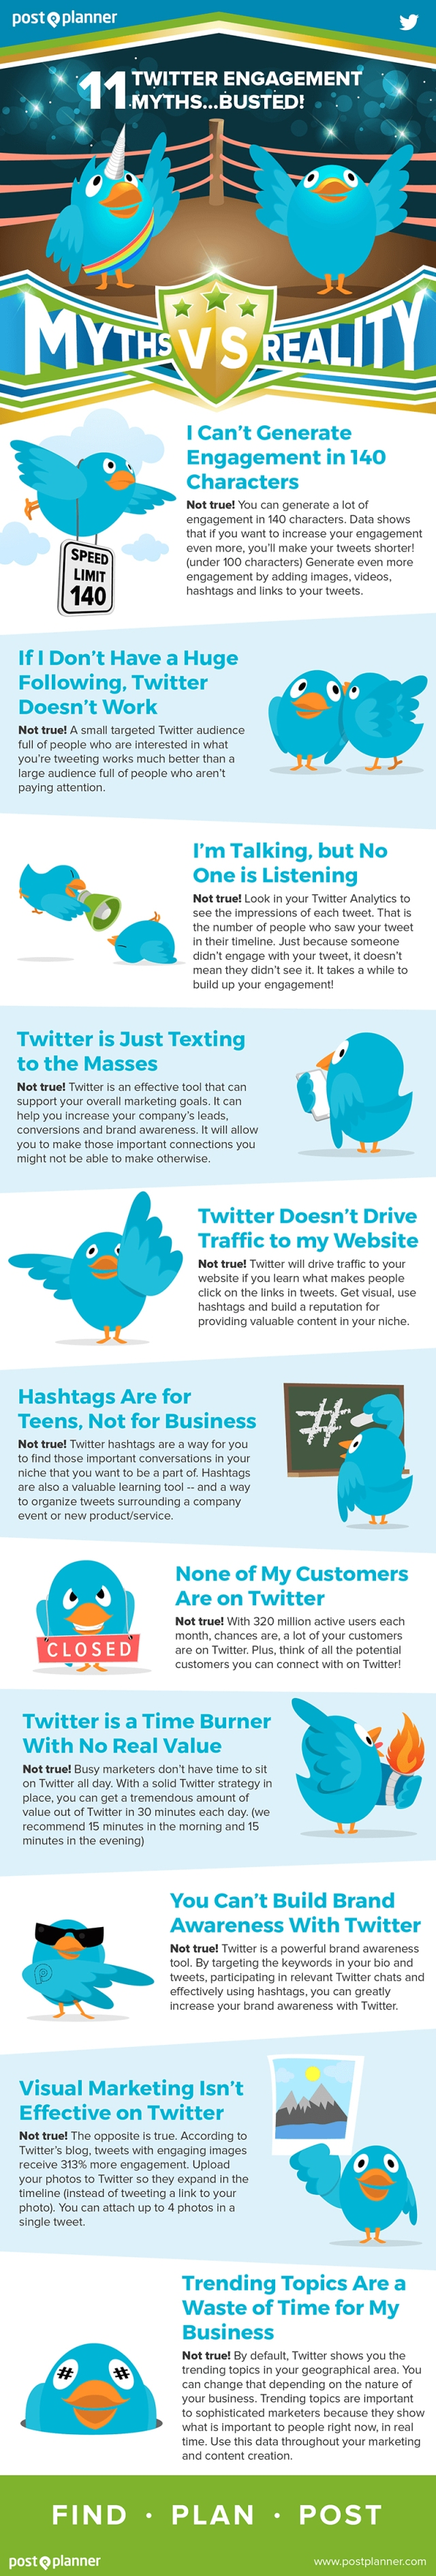 11 Myths That Are Holding Your Business Back On Twitter